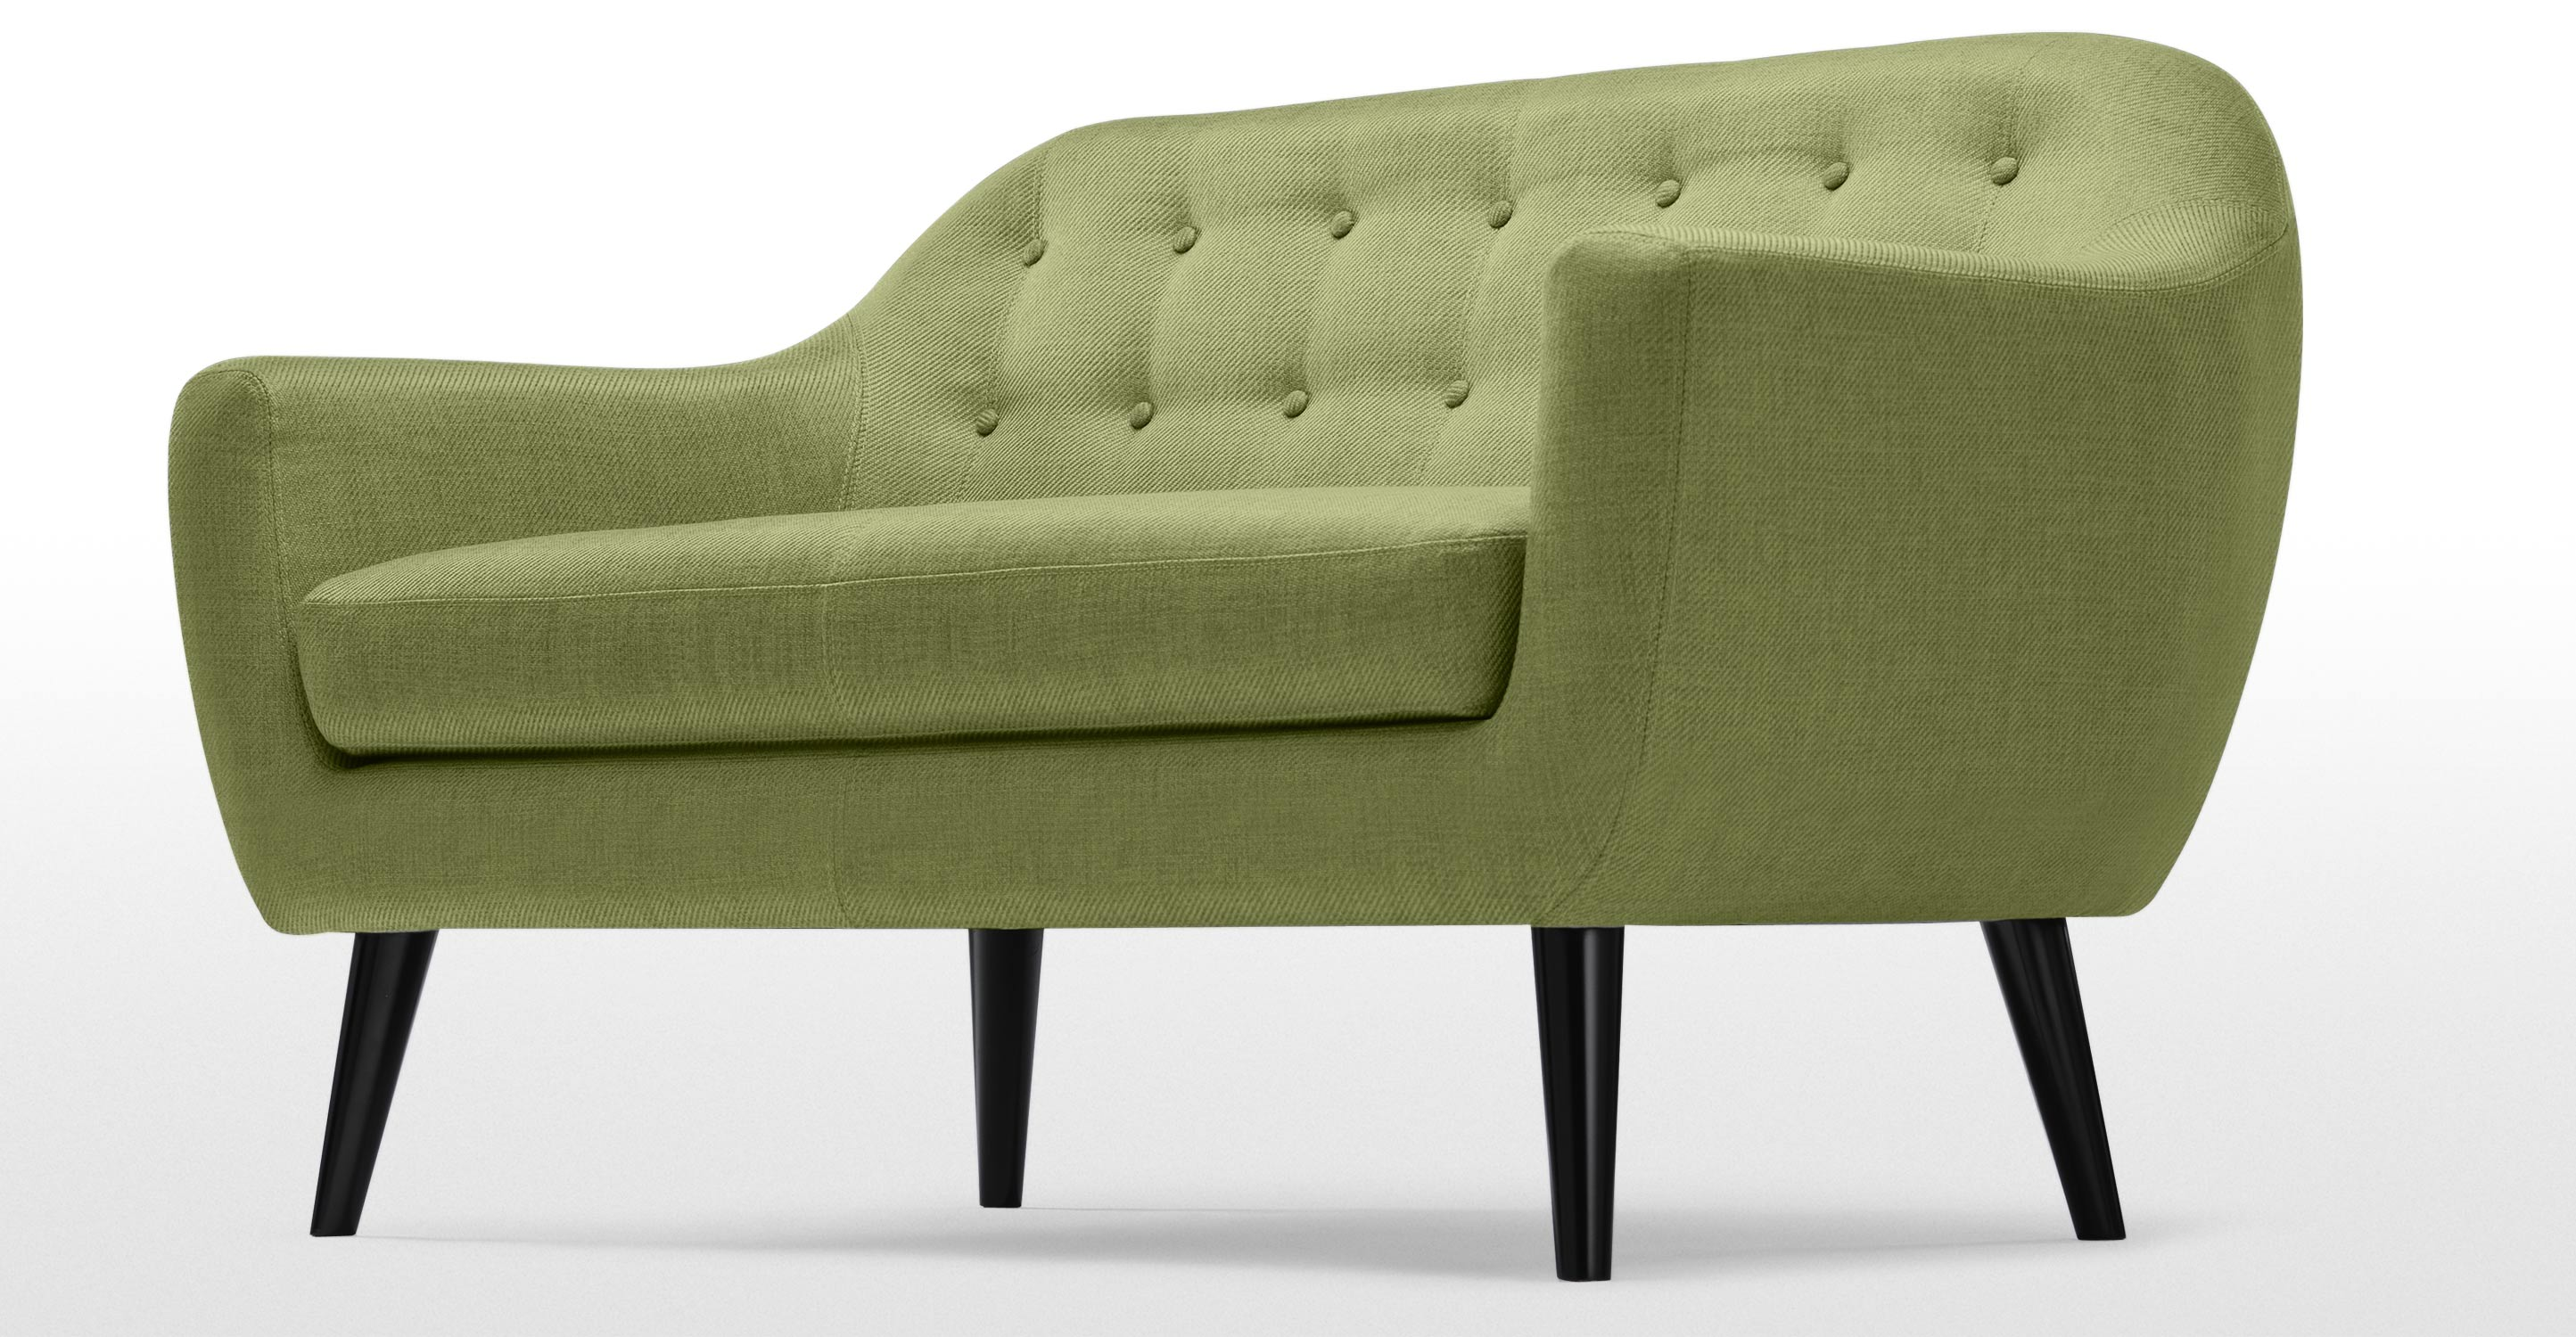 ritchie 2 seater sofa in lime green. Black Bedroom Furniture Sets. Home Design Ideas